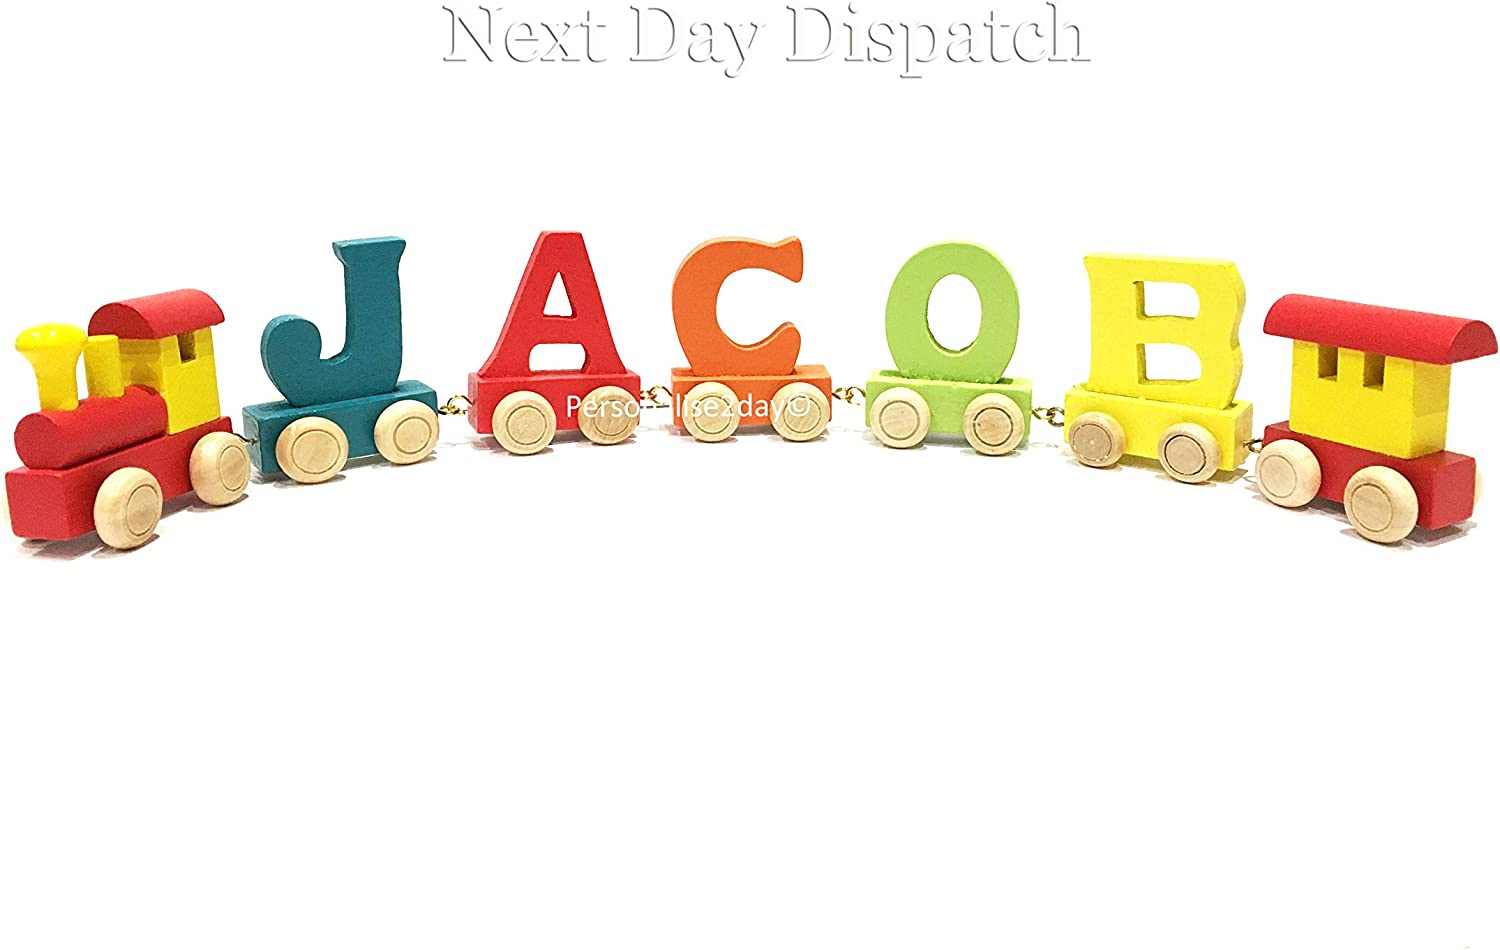 Colour Name, 5 Letter Name Personalized Colorful Wooden Train Alphabet Letter 5 Letters Name